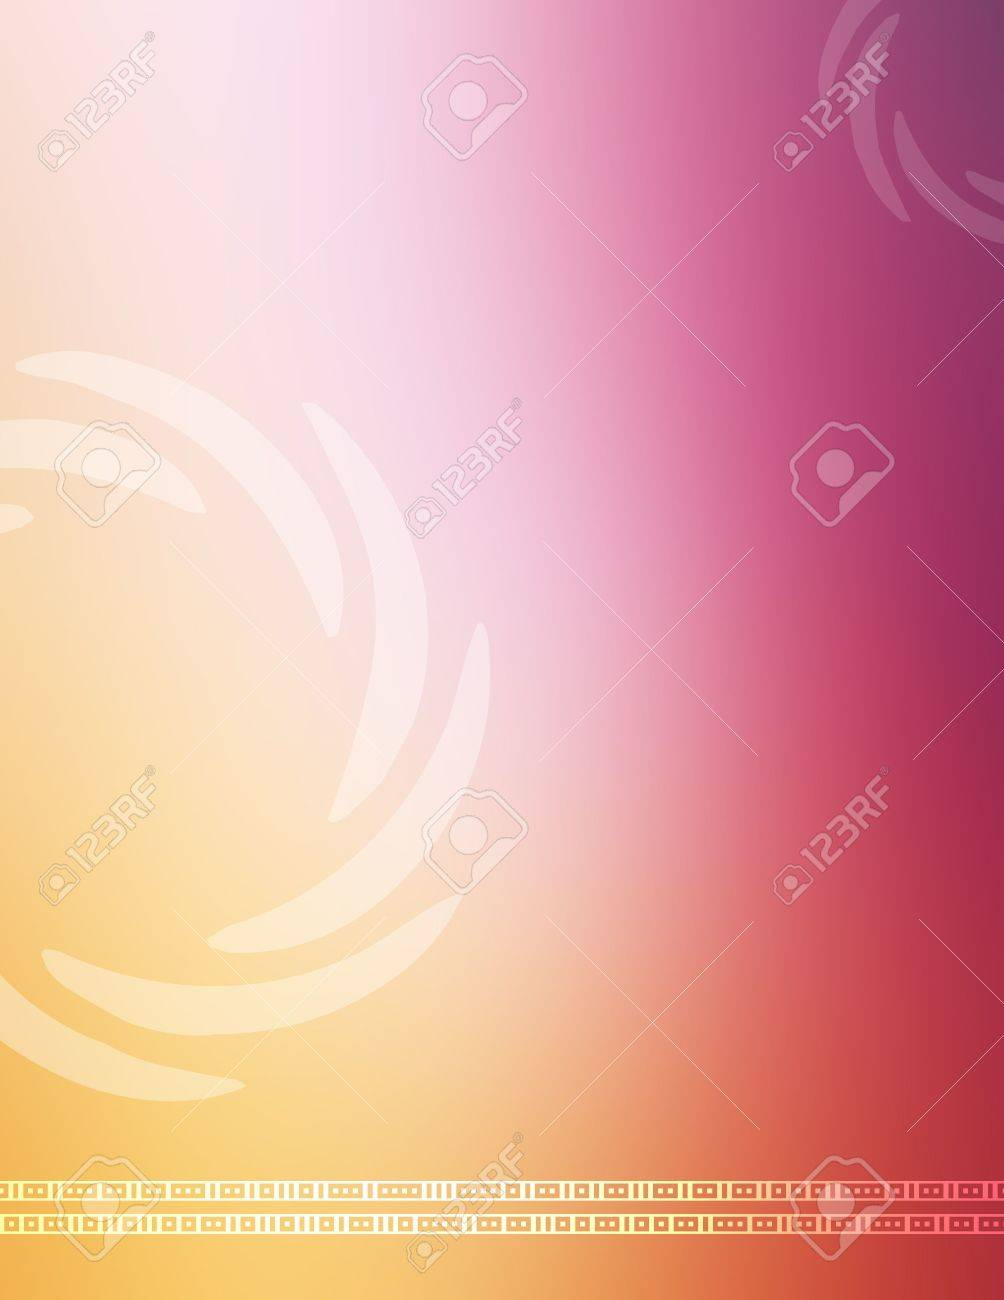 nice clean colorful background makes a great professional cover nice clean colorful background makes a great professional cover business card interface power